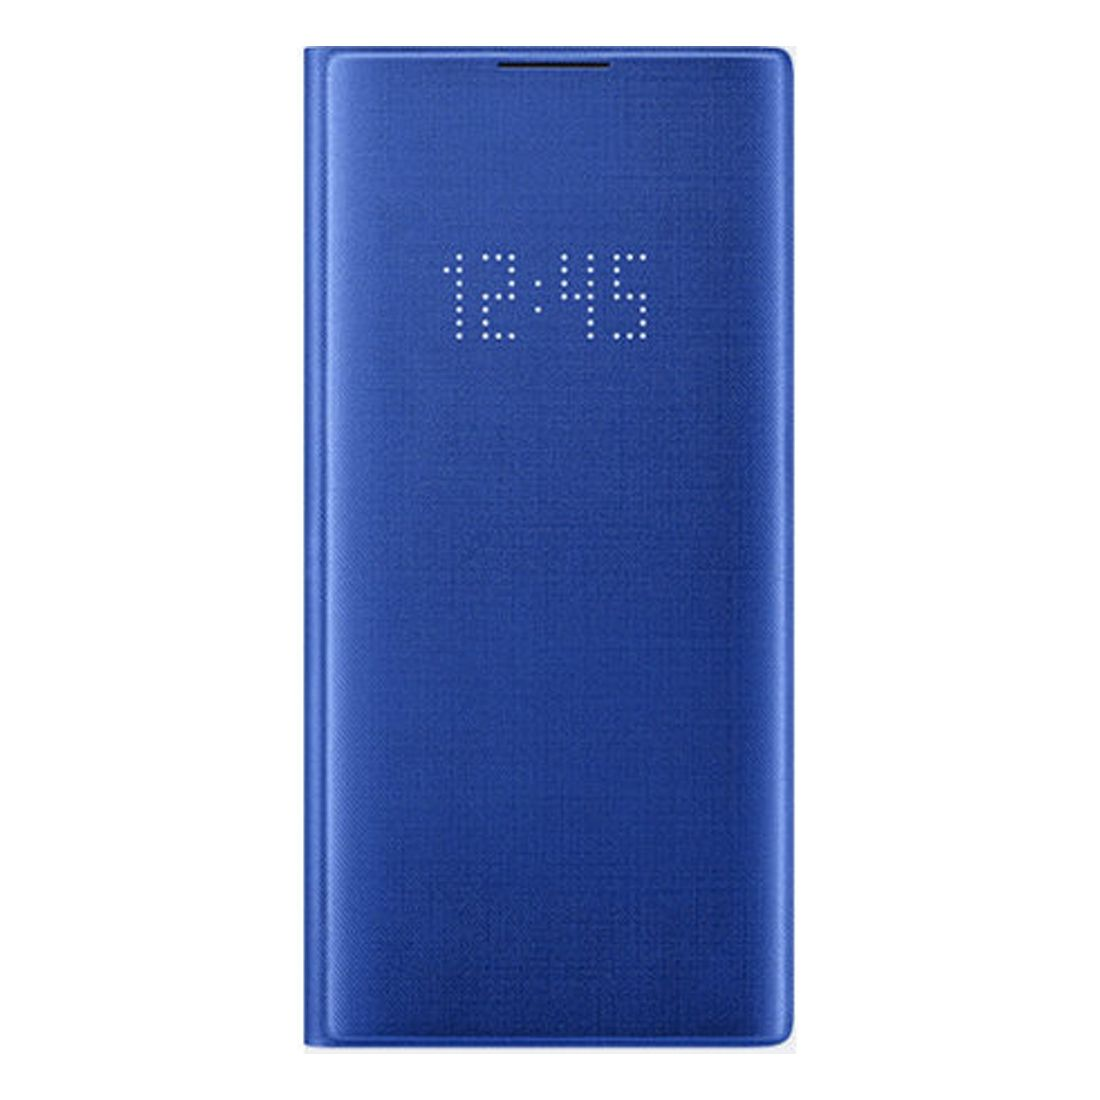 Samsung Galaxy Note 10+ Plus LED View Cover - Blue